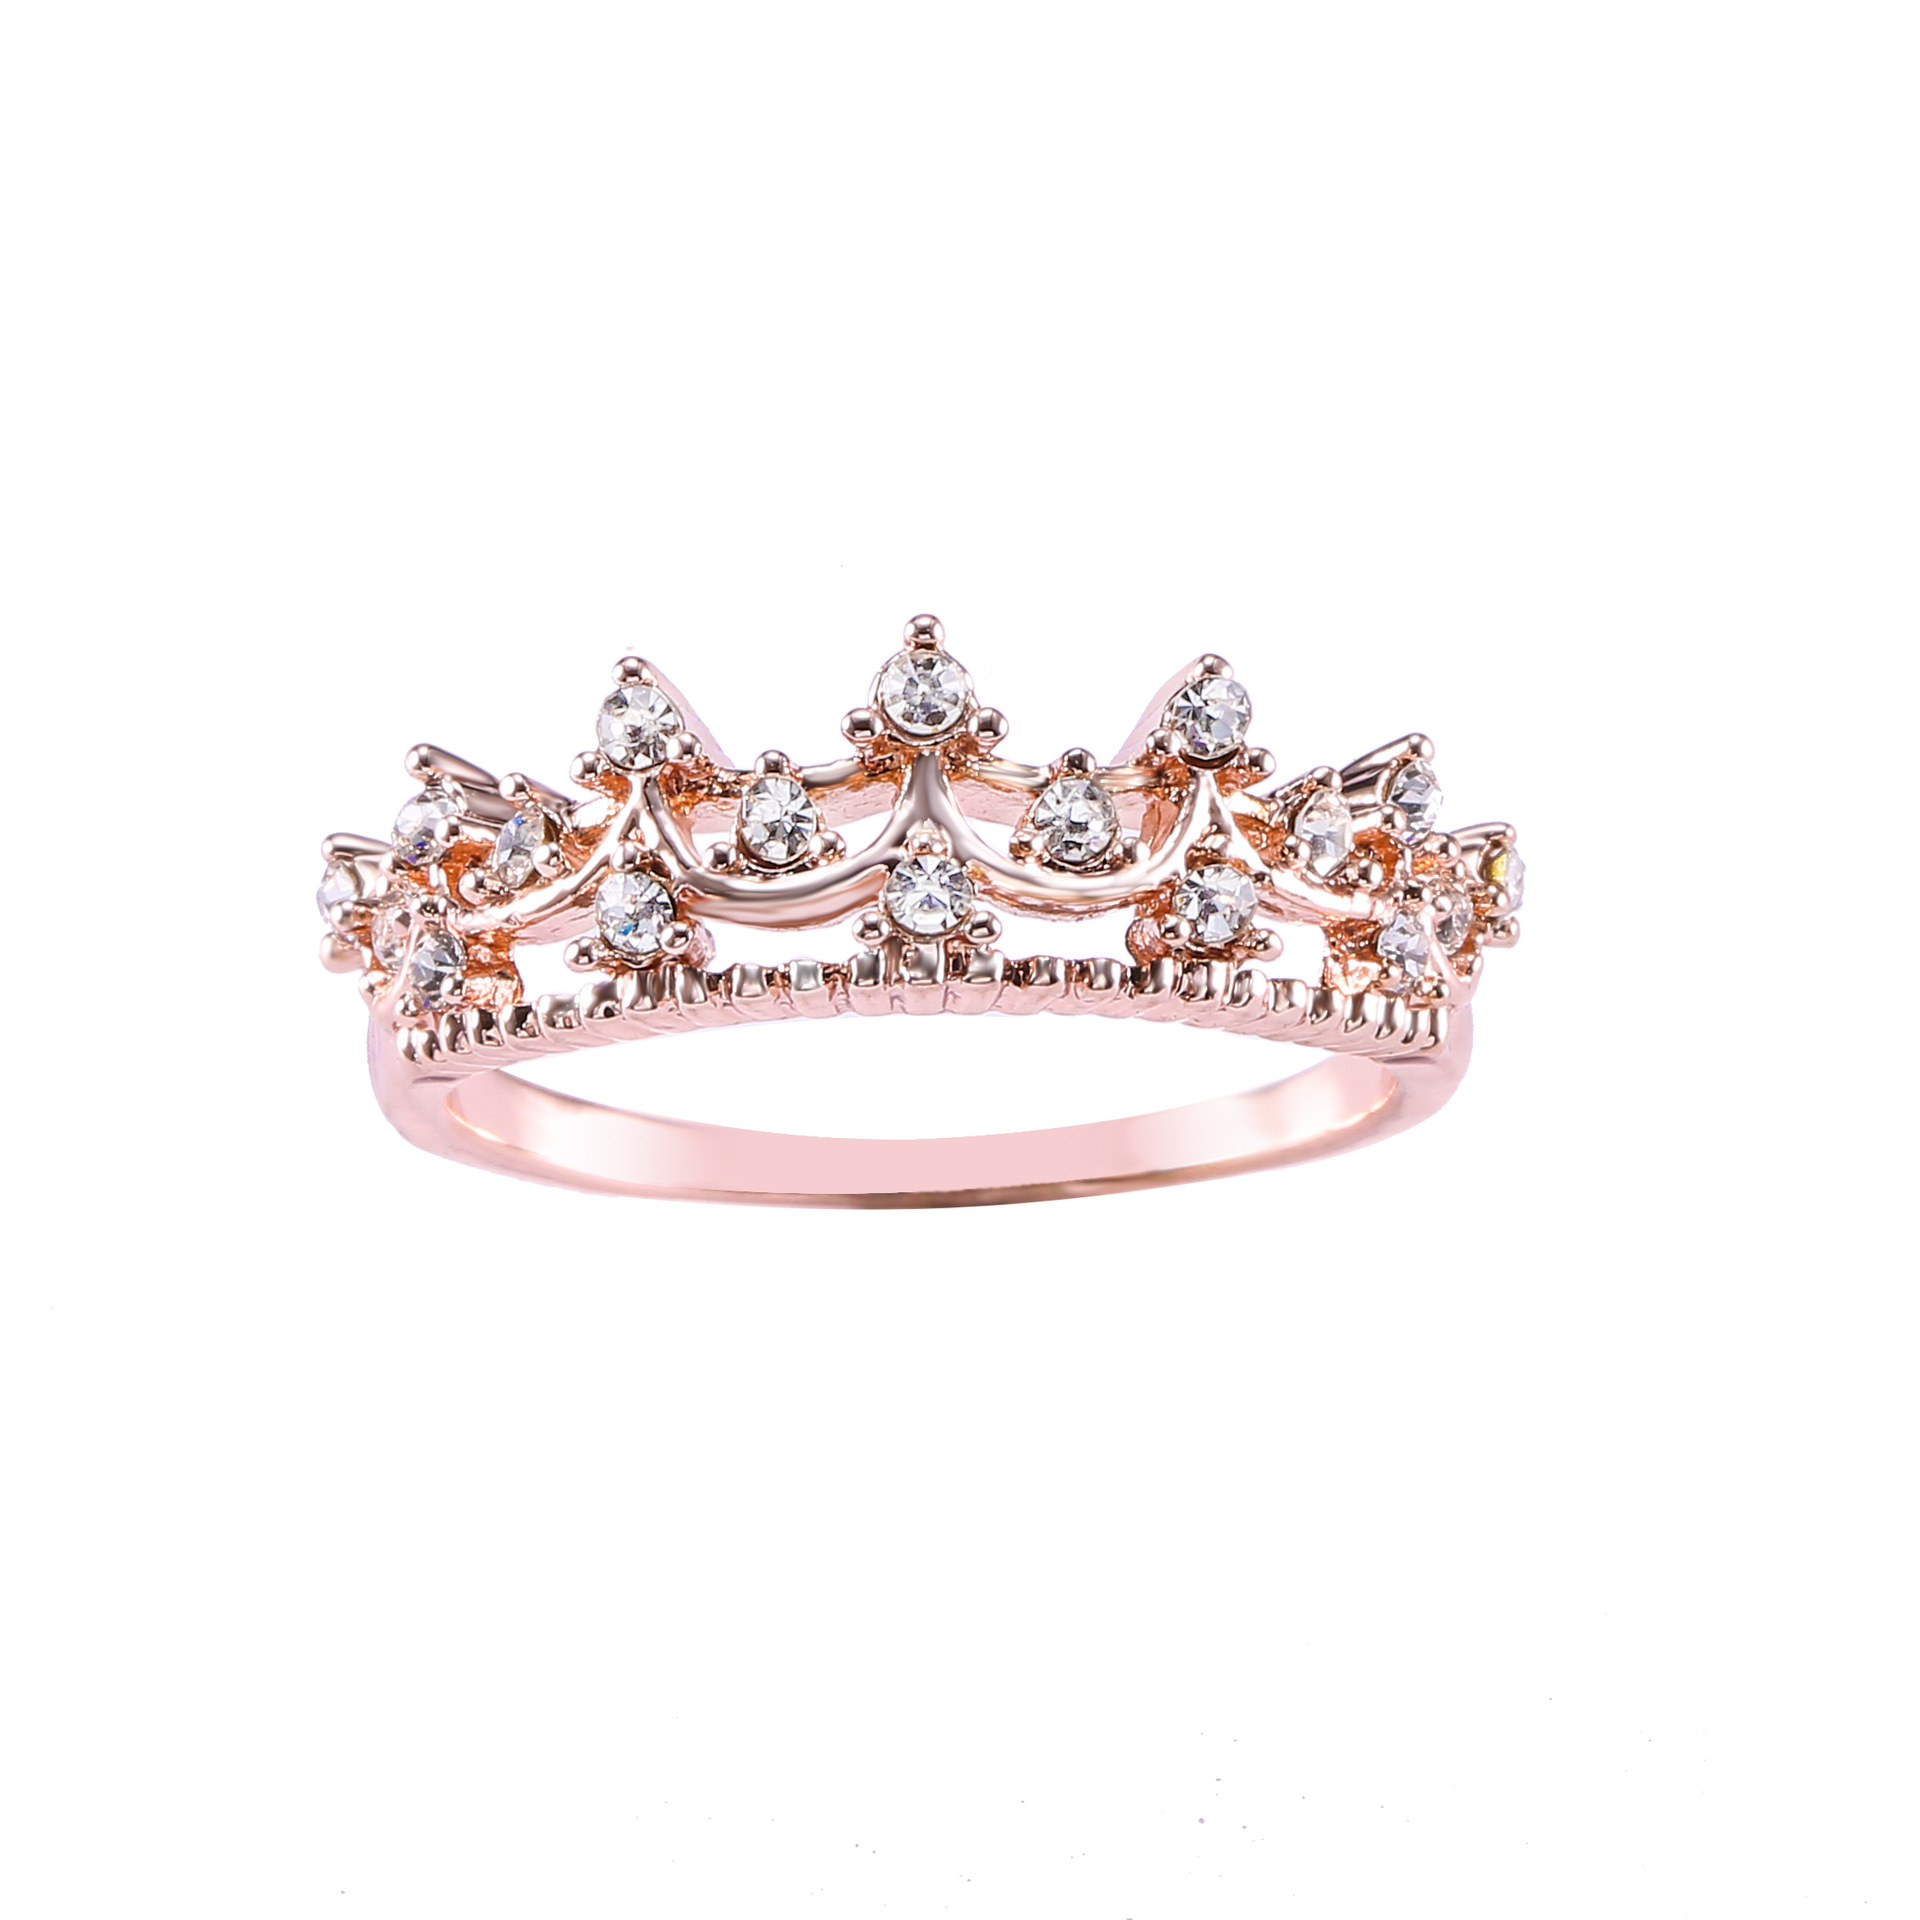 Hollow Flash Rhinestone Crown Ring 2017 Fashion Jewelry Rose Gold Color Rings for Women Ladies Rings Anillos Mujer Bagues Femme